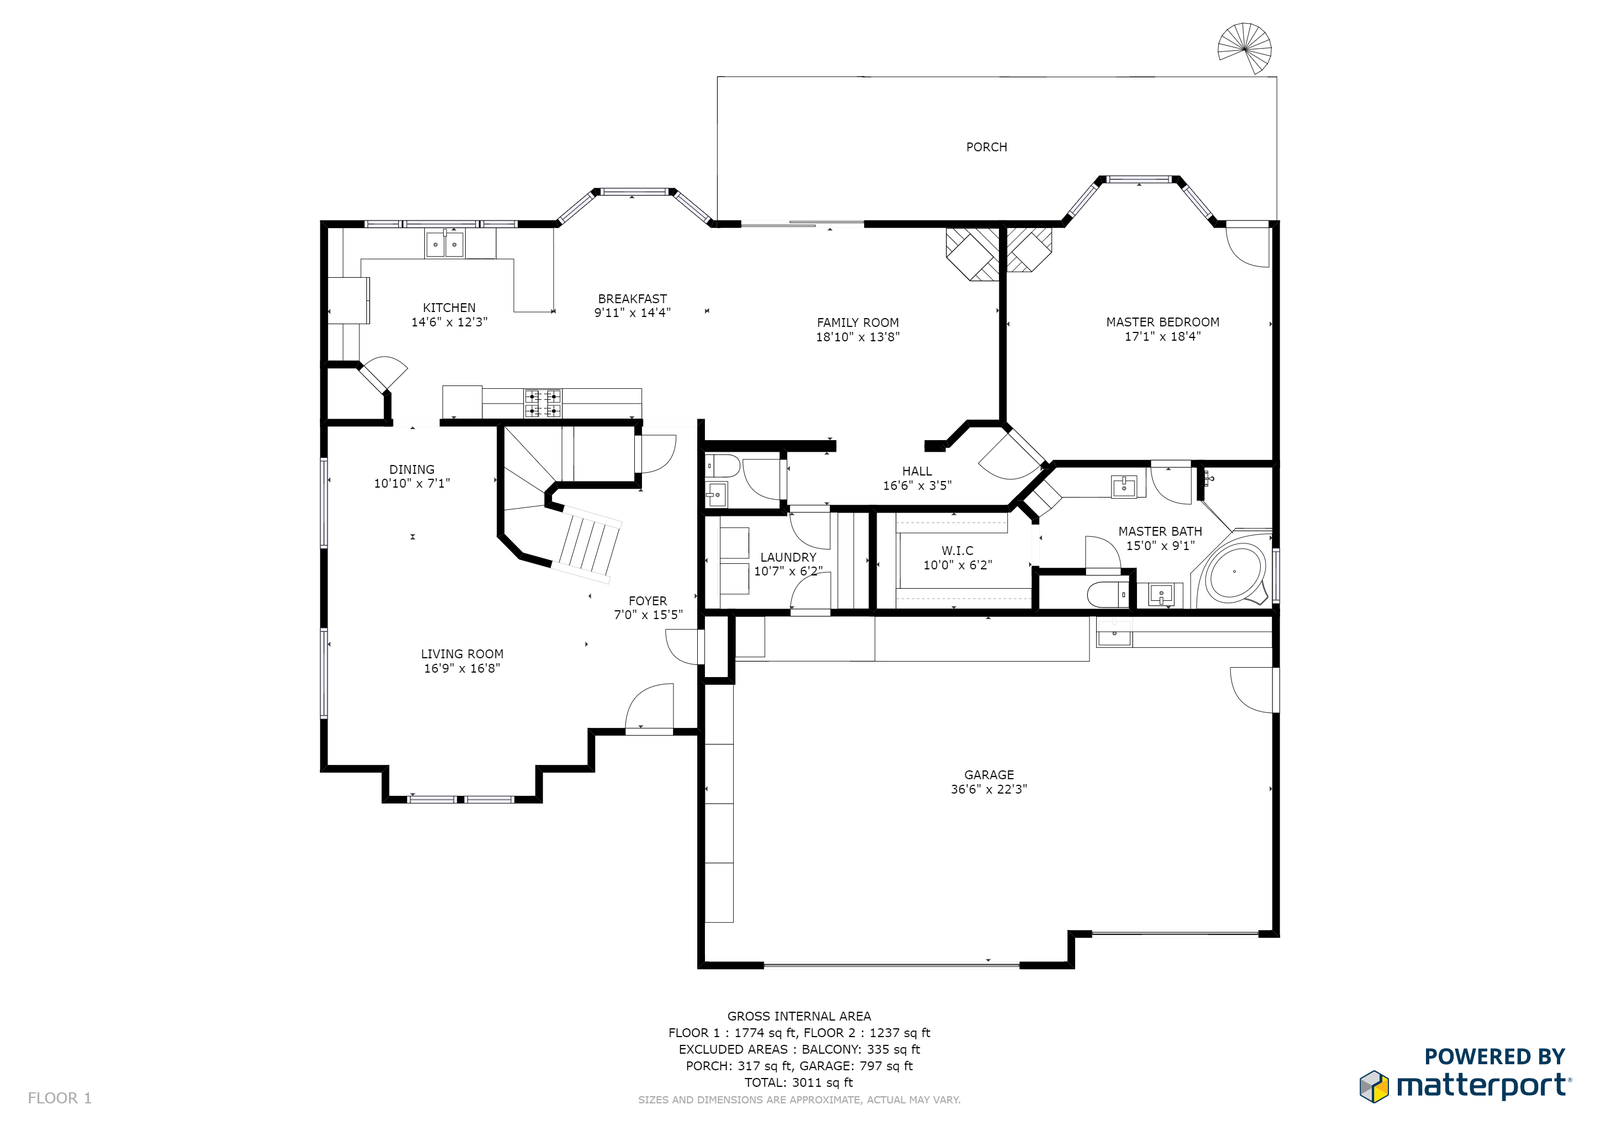 Matterport detialed floor plans used in in Phoenix and Scottsdale